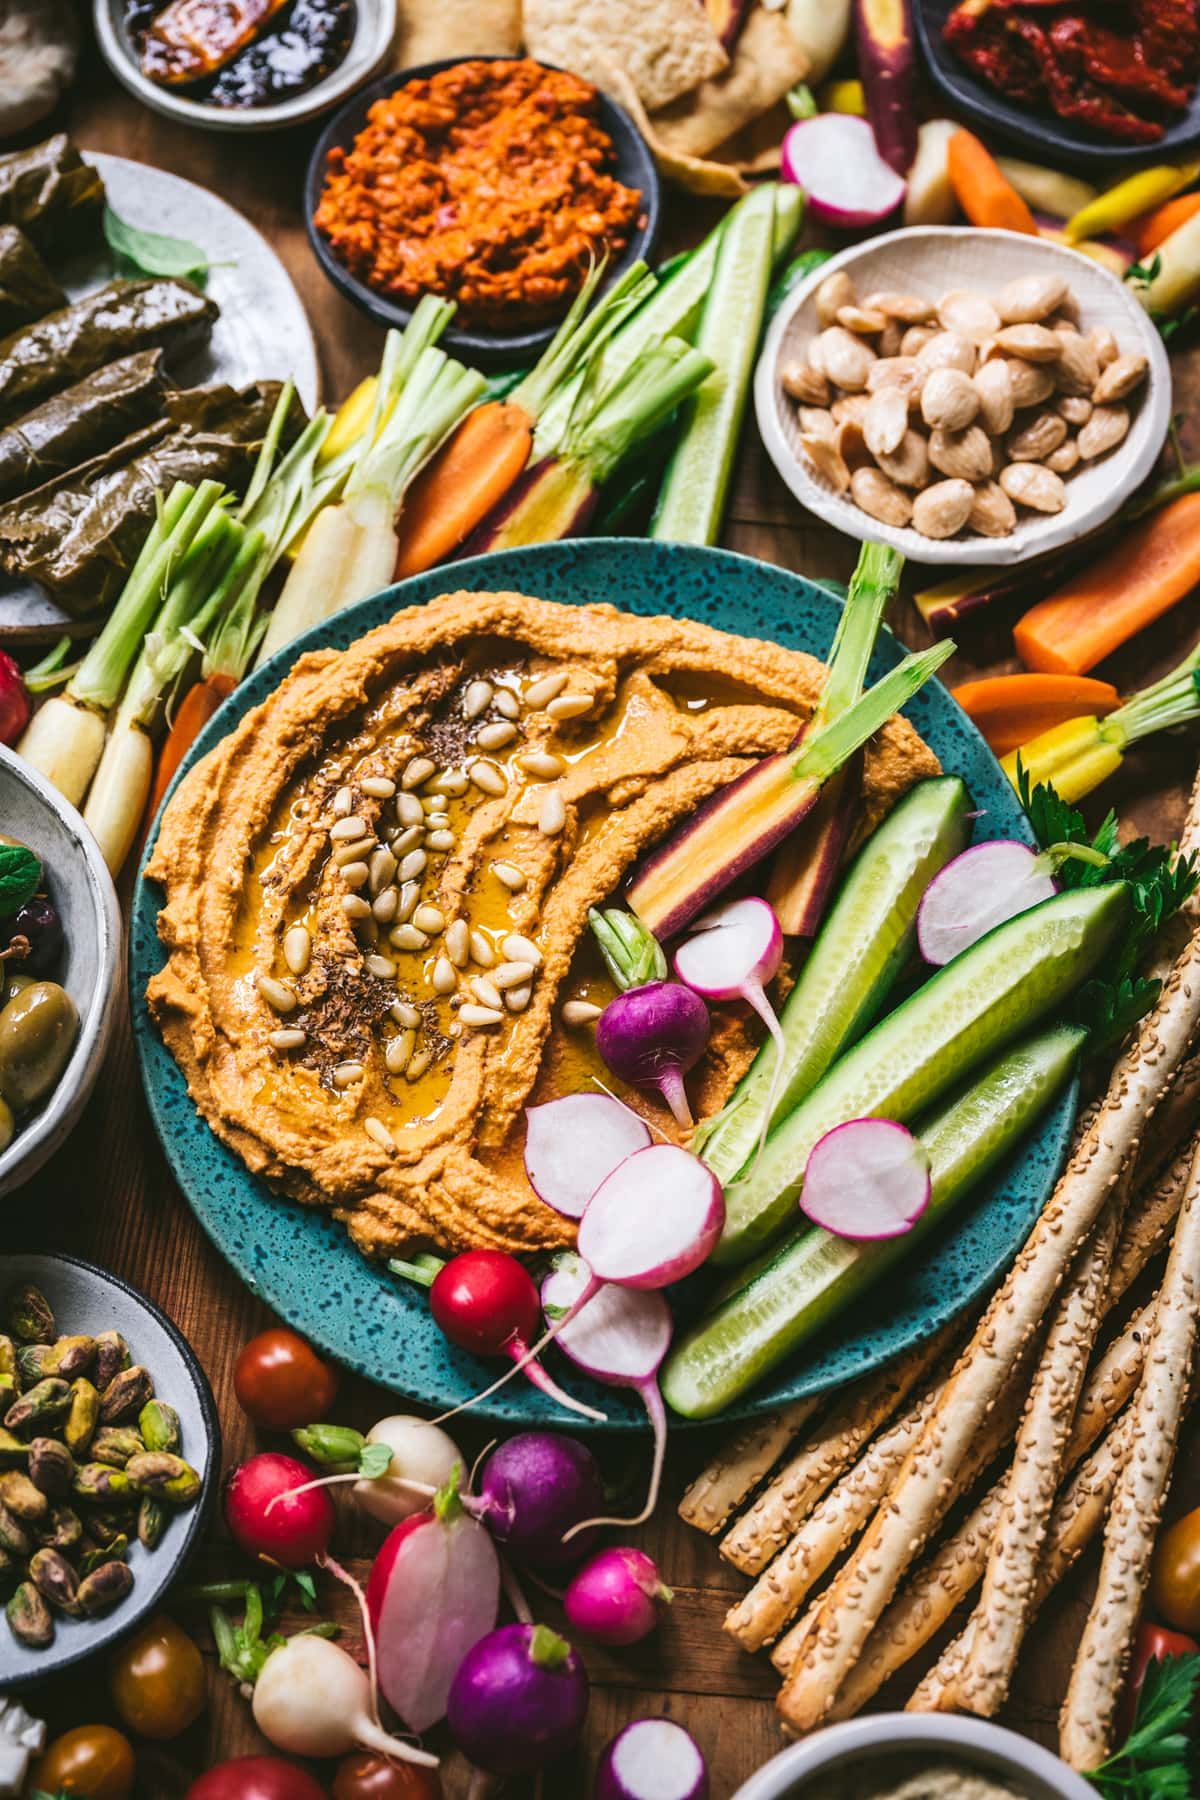 close up view of roasted red pepper hummus with fresh vegetables for dipping